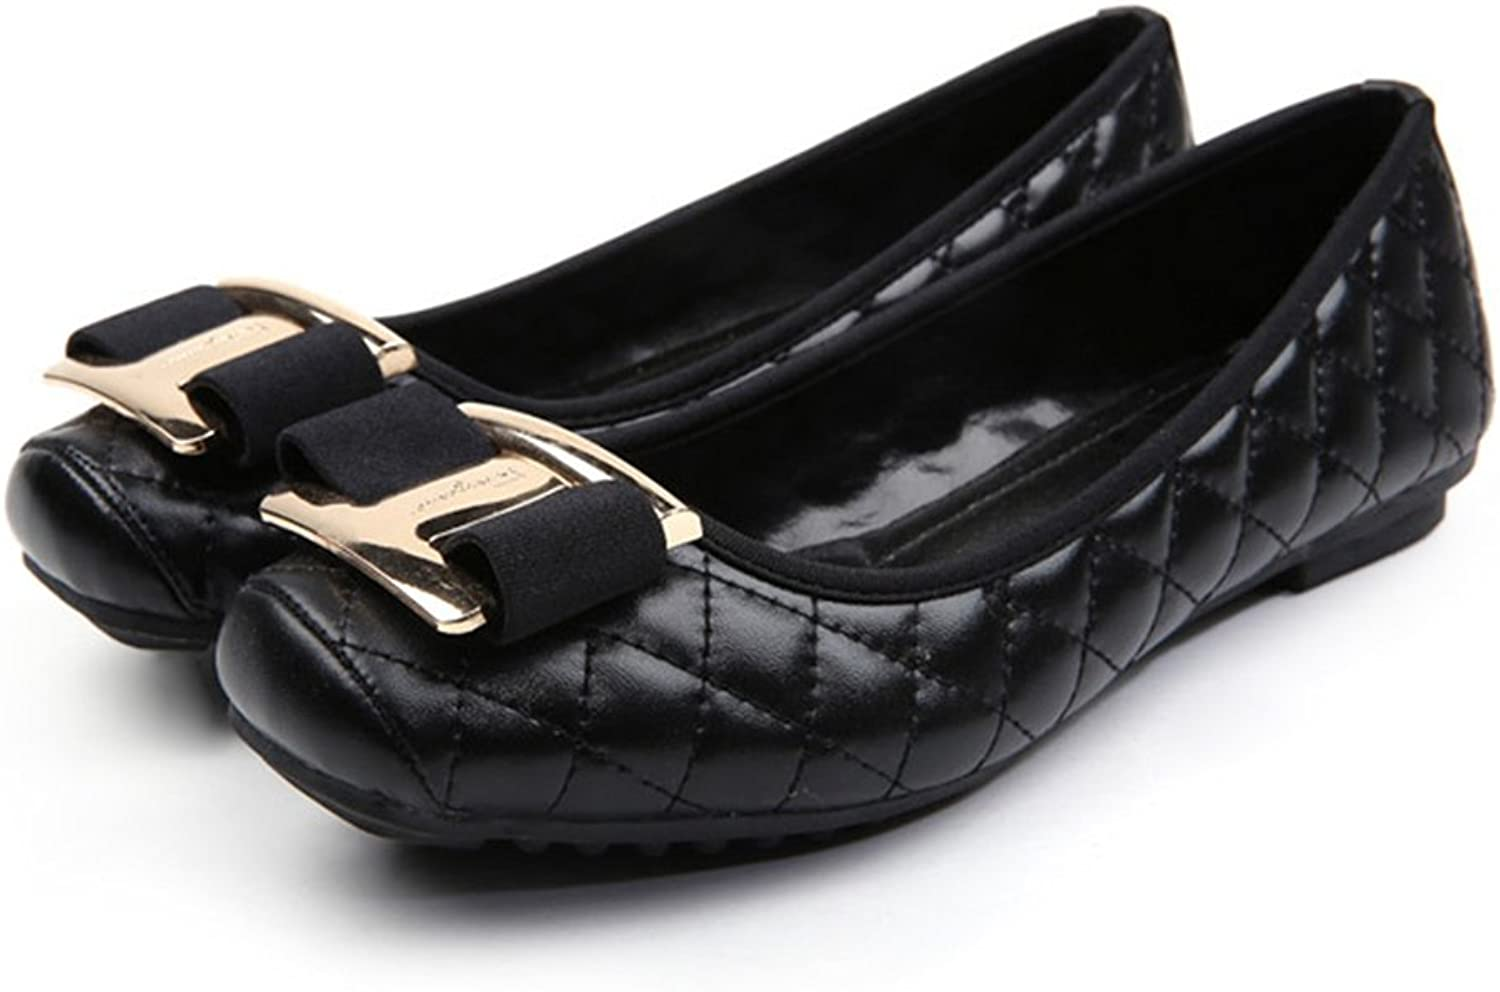 Metal Square Button Bowknot Flat Thin shoes black 41